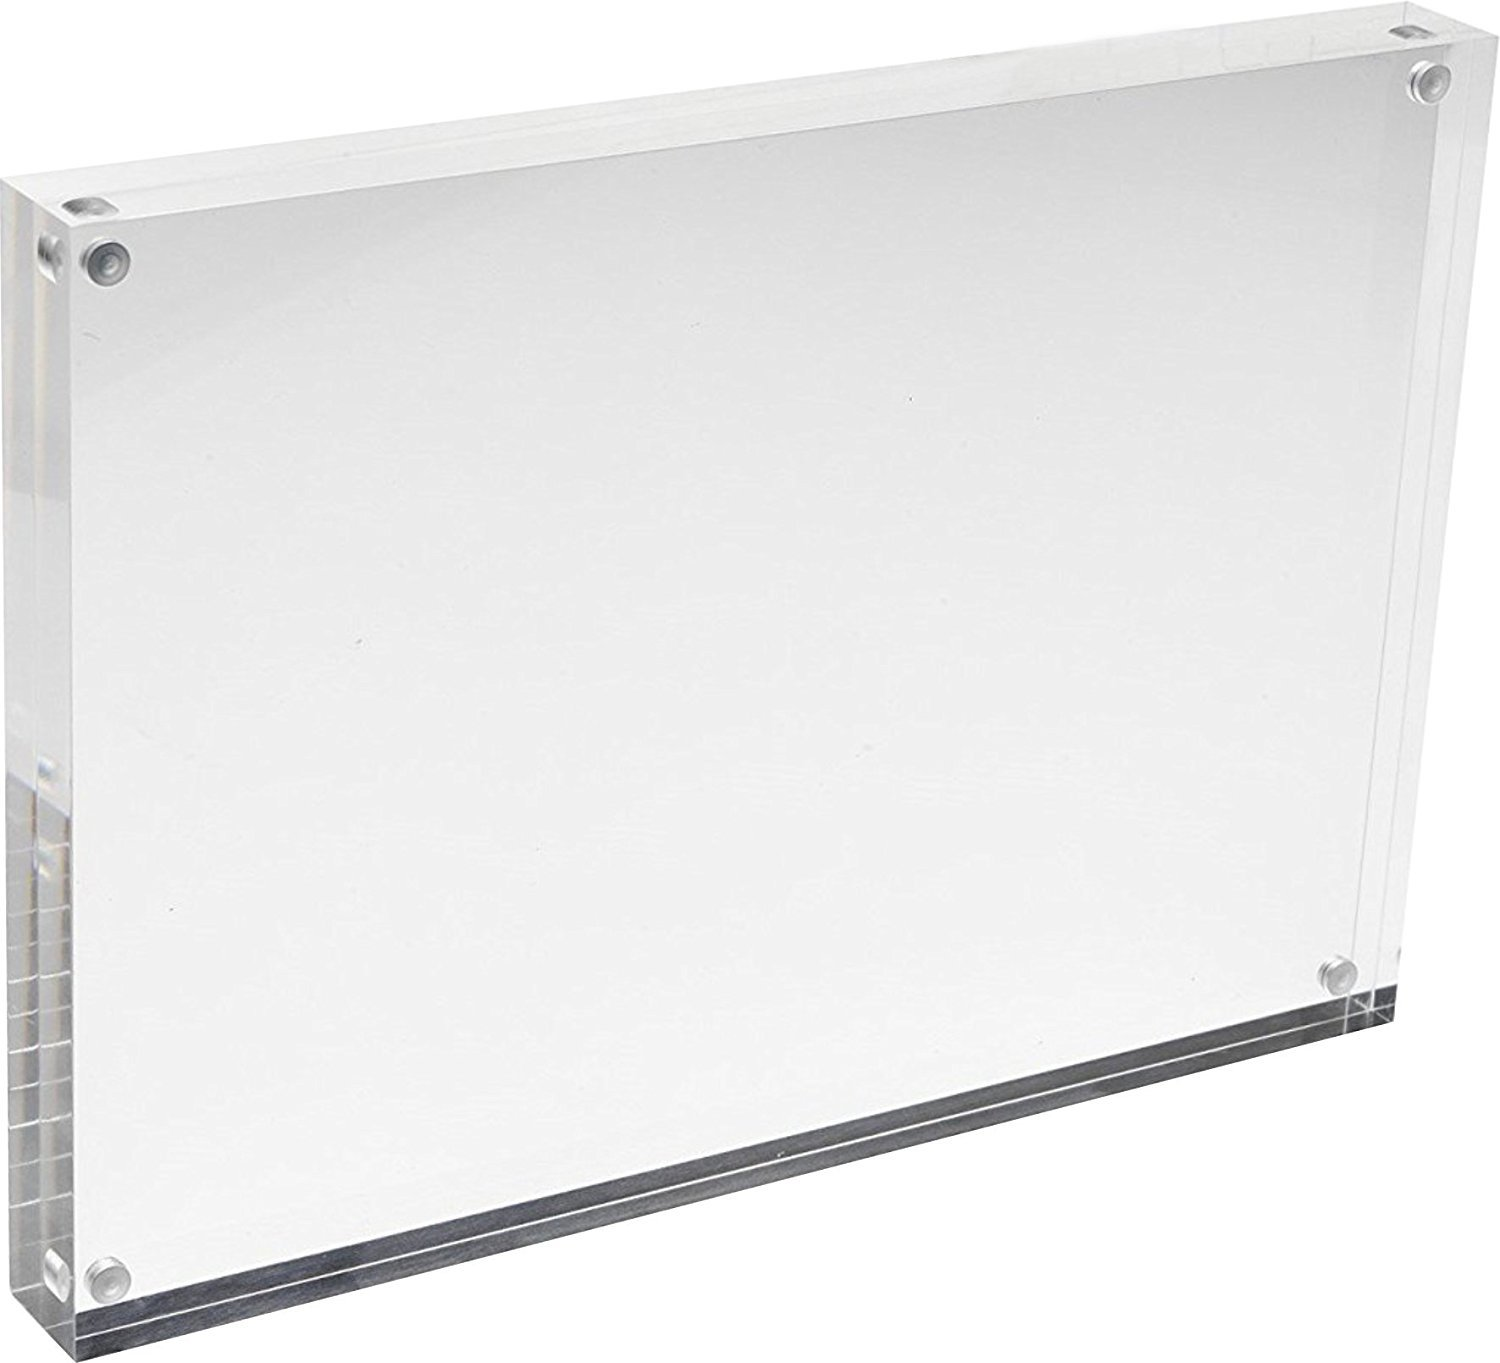 Cq acrylic 8x10 Acrylic Frame, Magnetic Picture Frames, Clear, 10 + ...